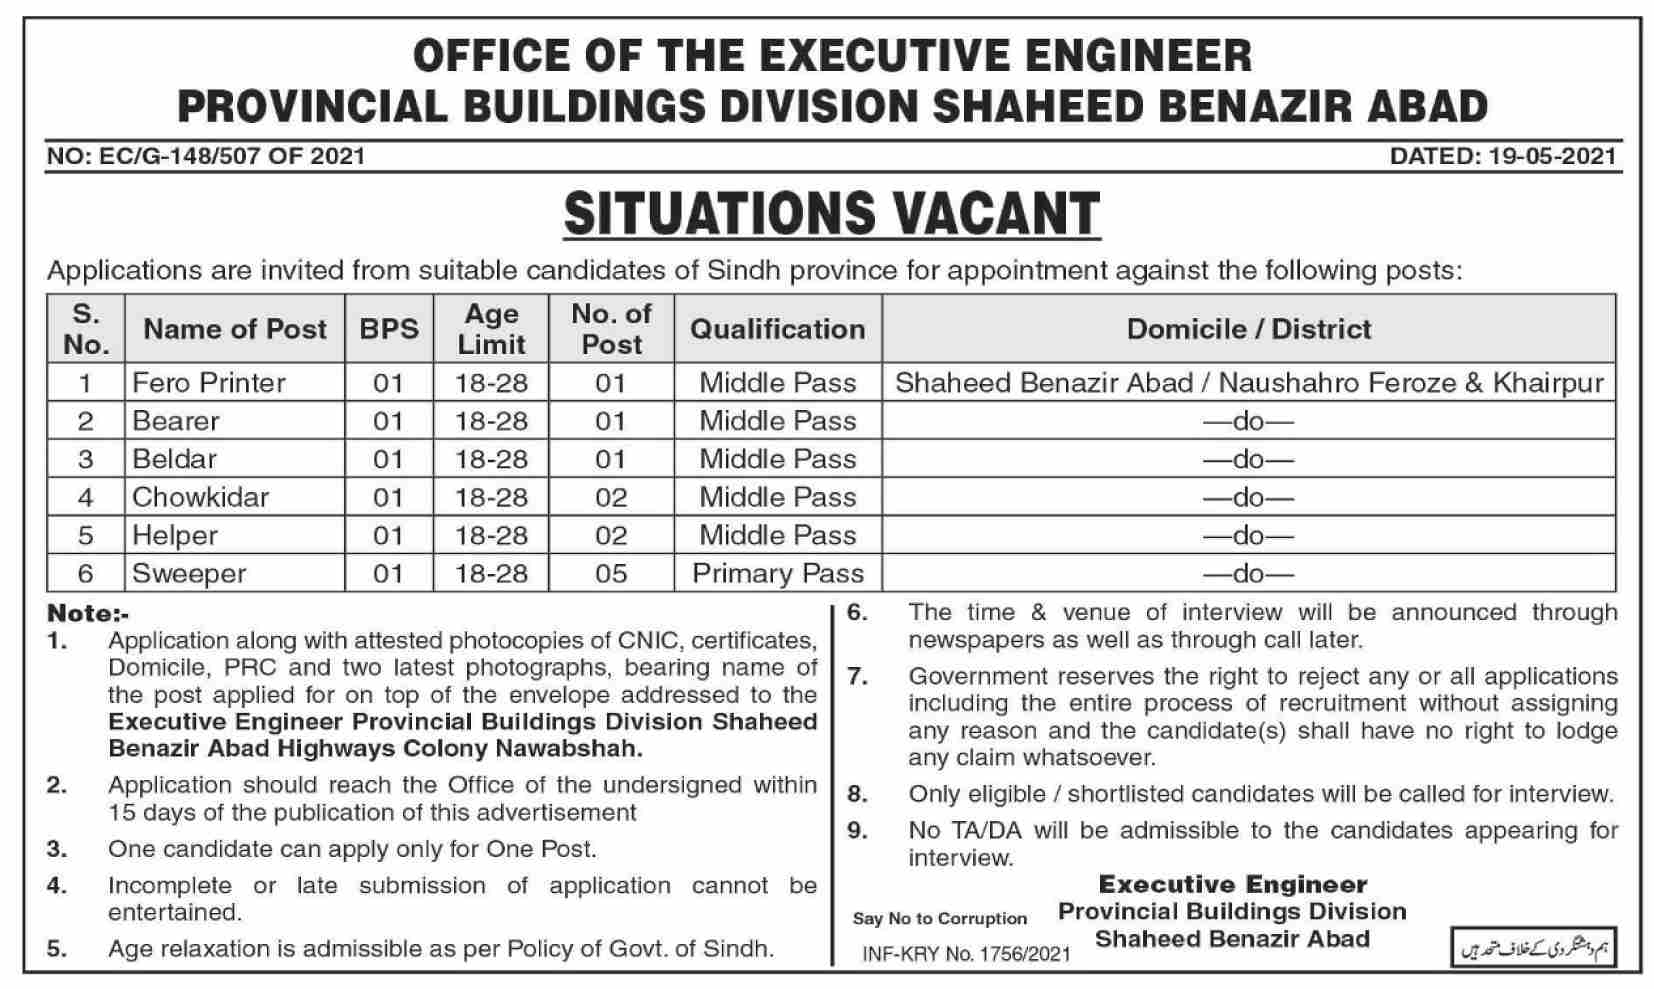 Executive Engineer Provincial Buildings Division Office Jobs 2021 in Pakistan